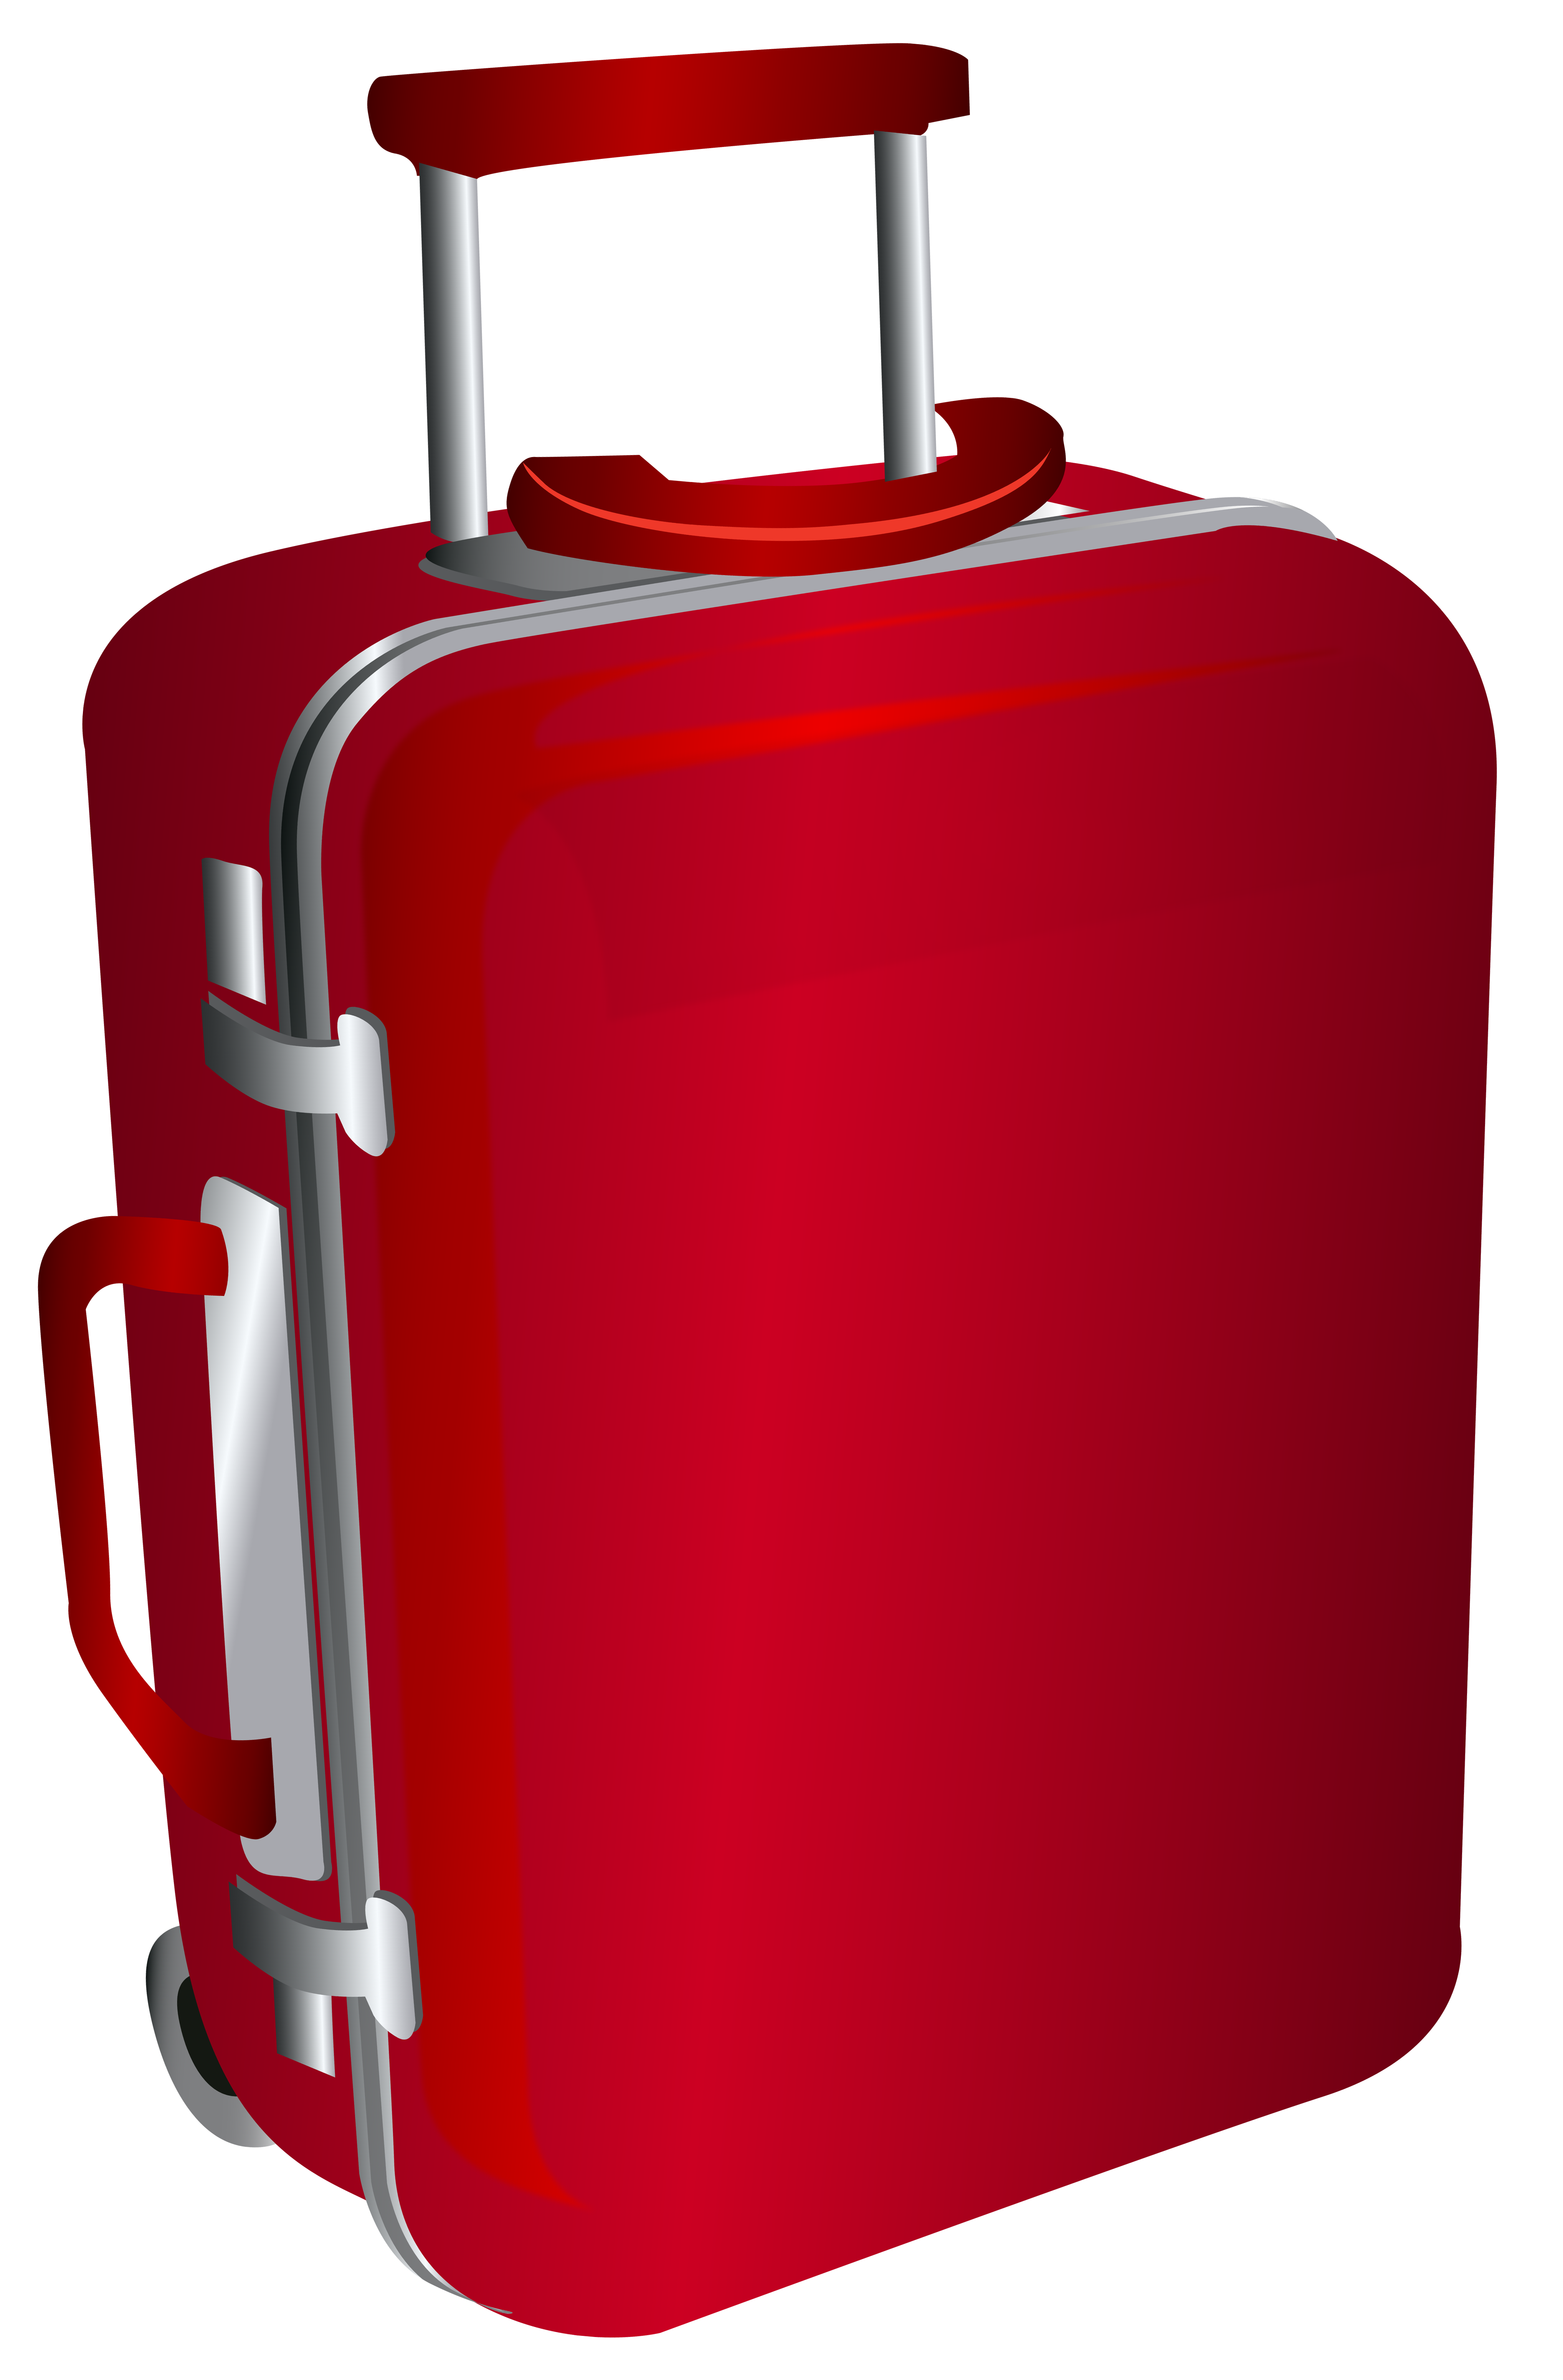 Red Trolley Travel Bag PNG Clipart Image.